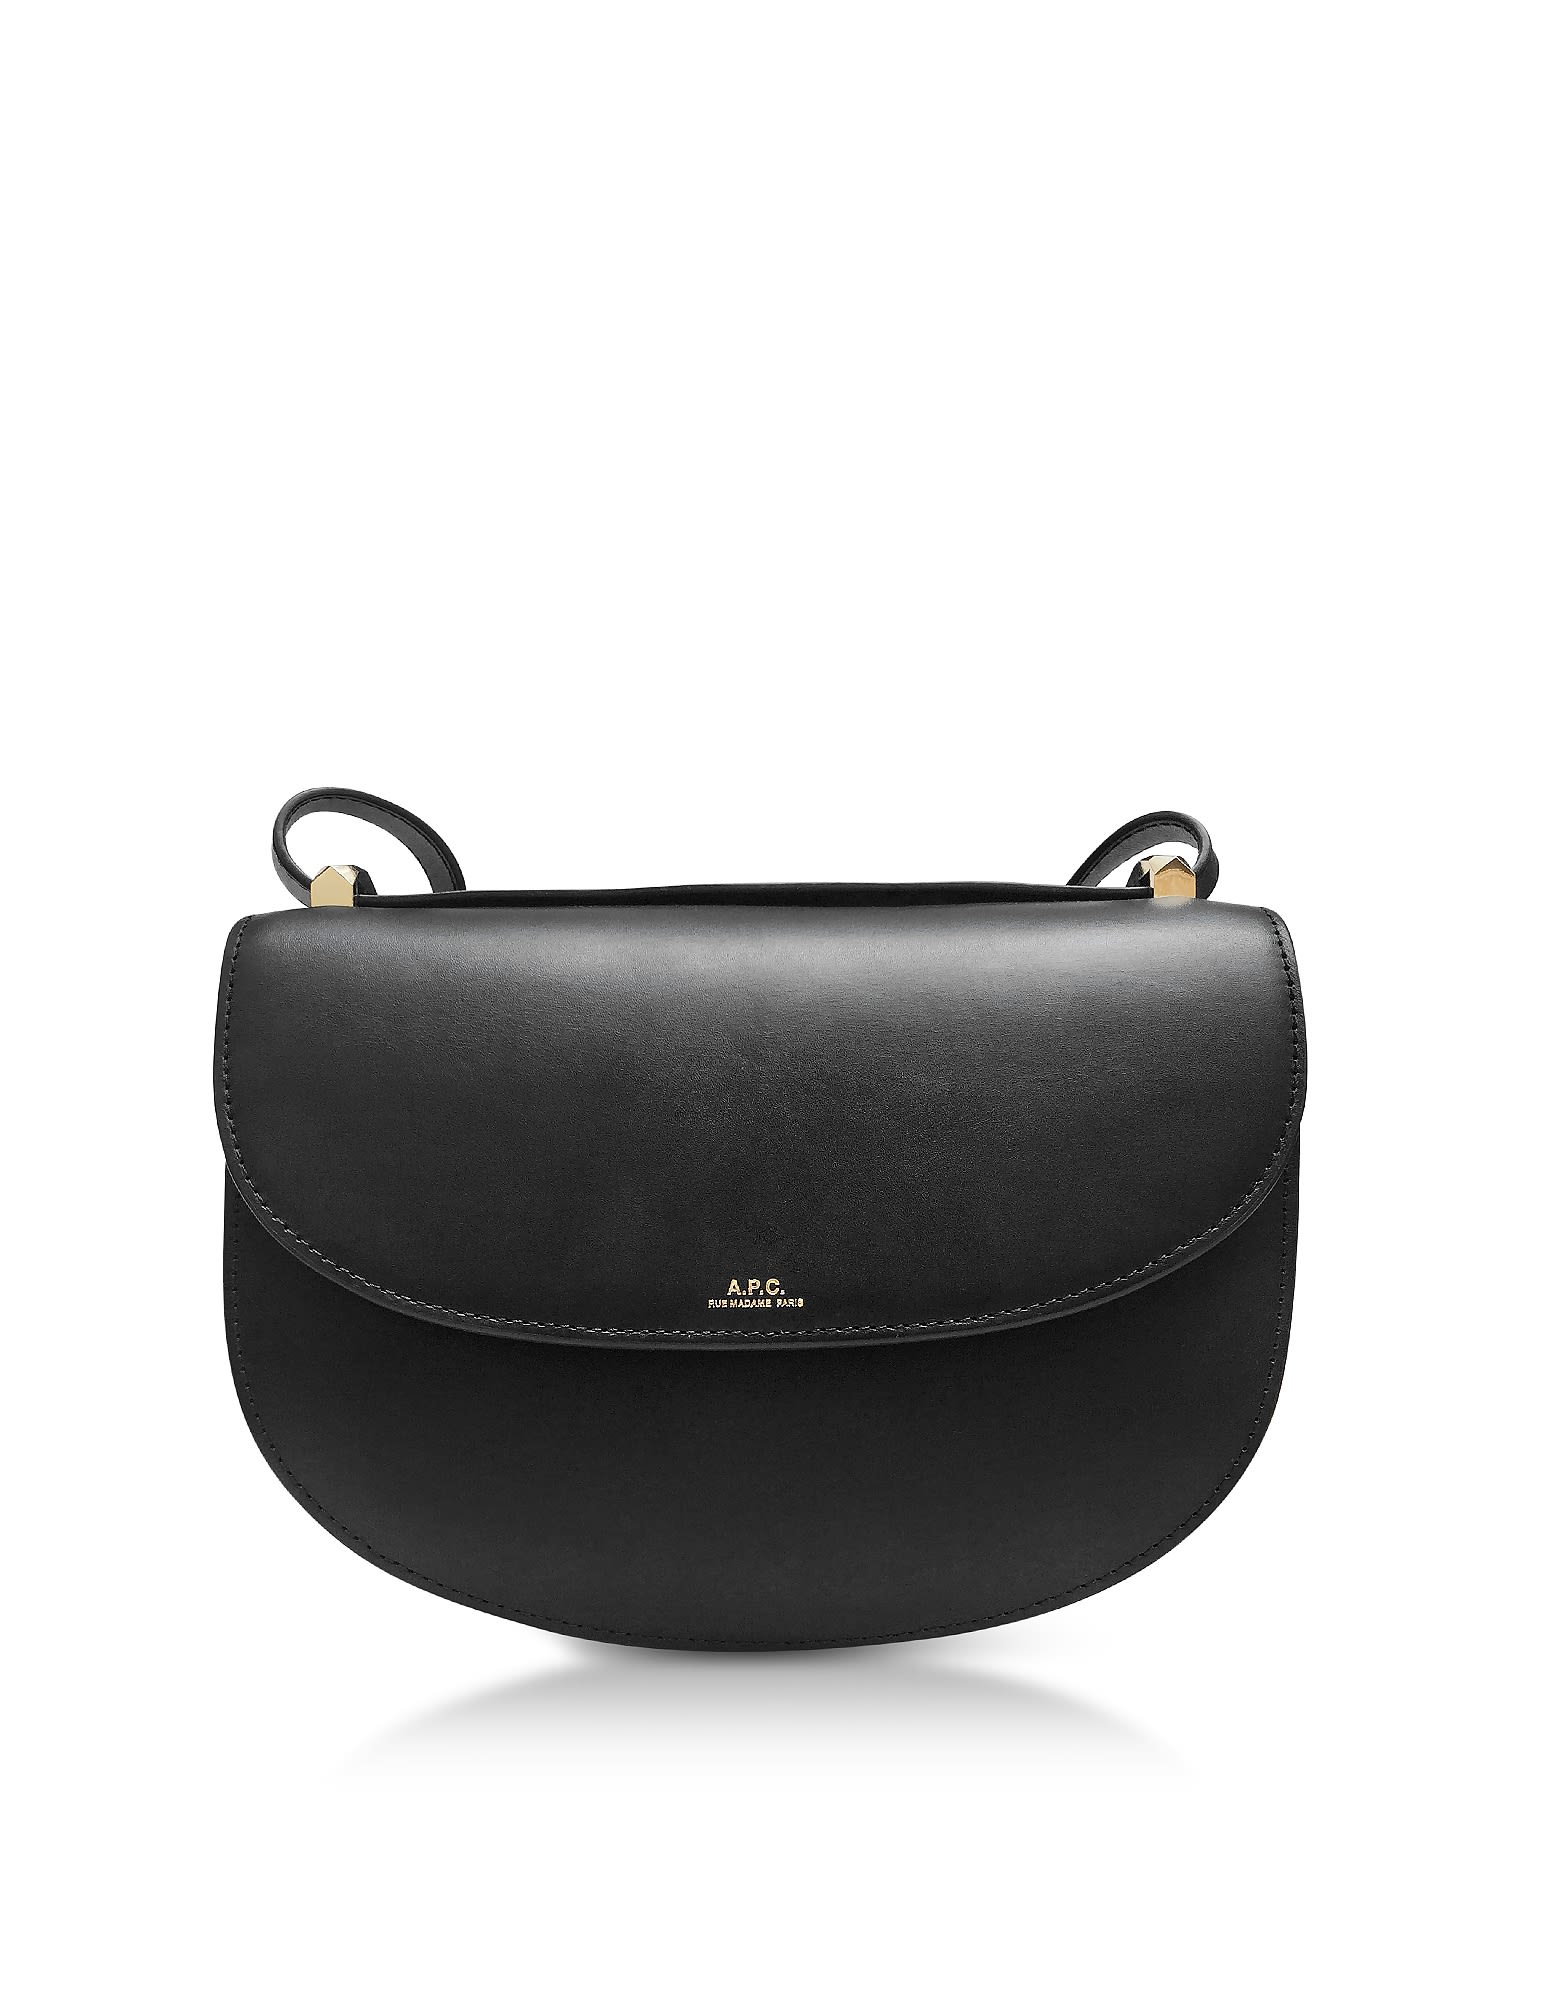 A.p.c. Black Geneve Leather Crossbody Bag